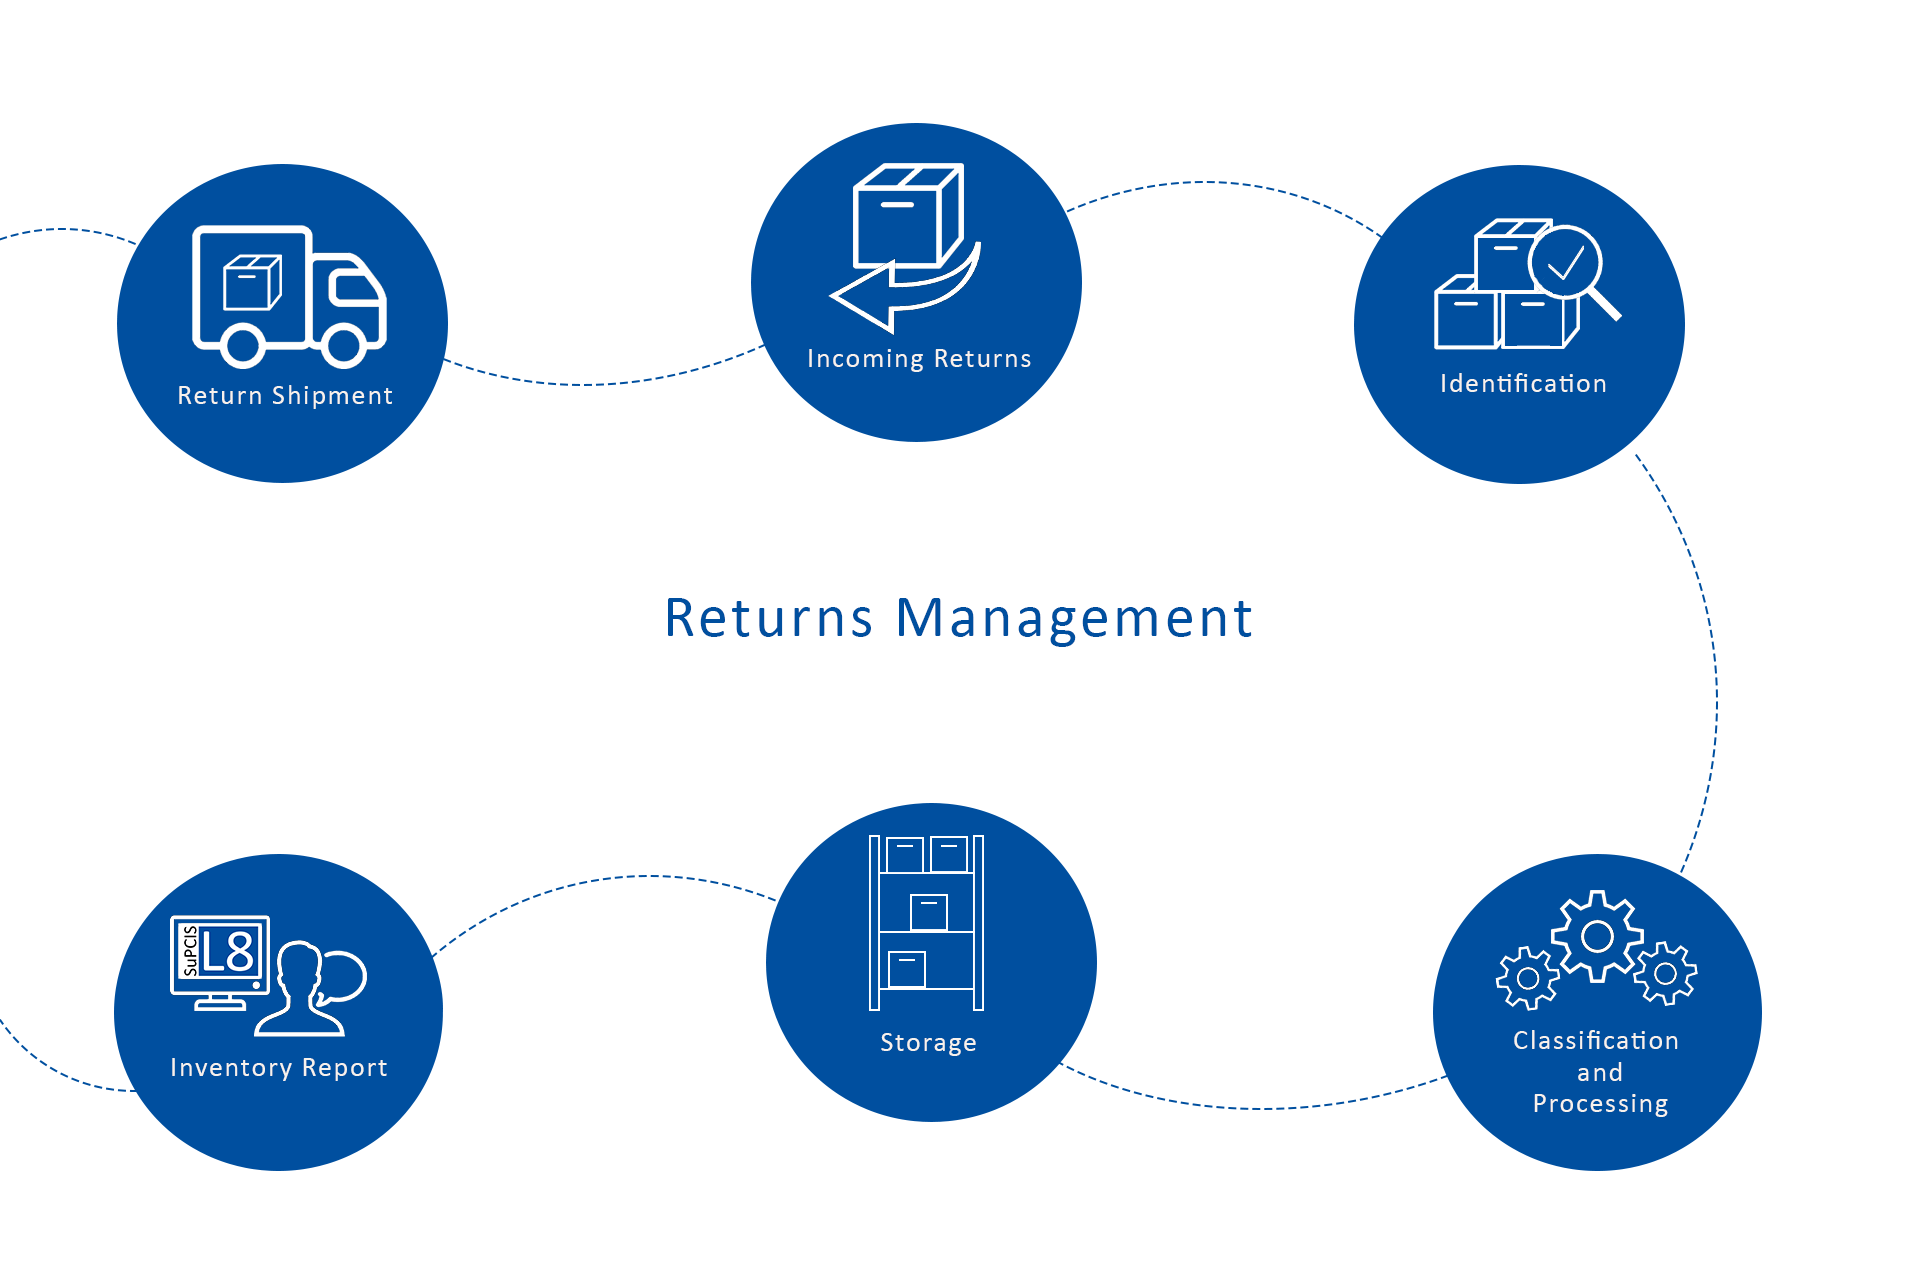 Phases of Returns Management in logistics